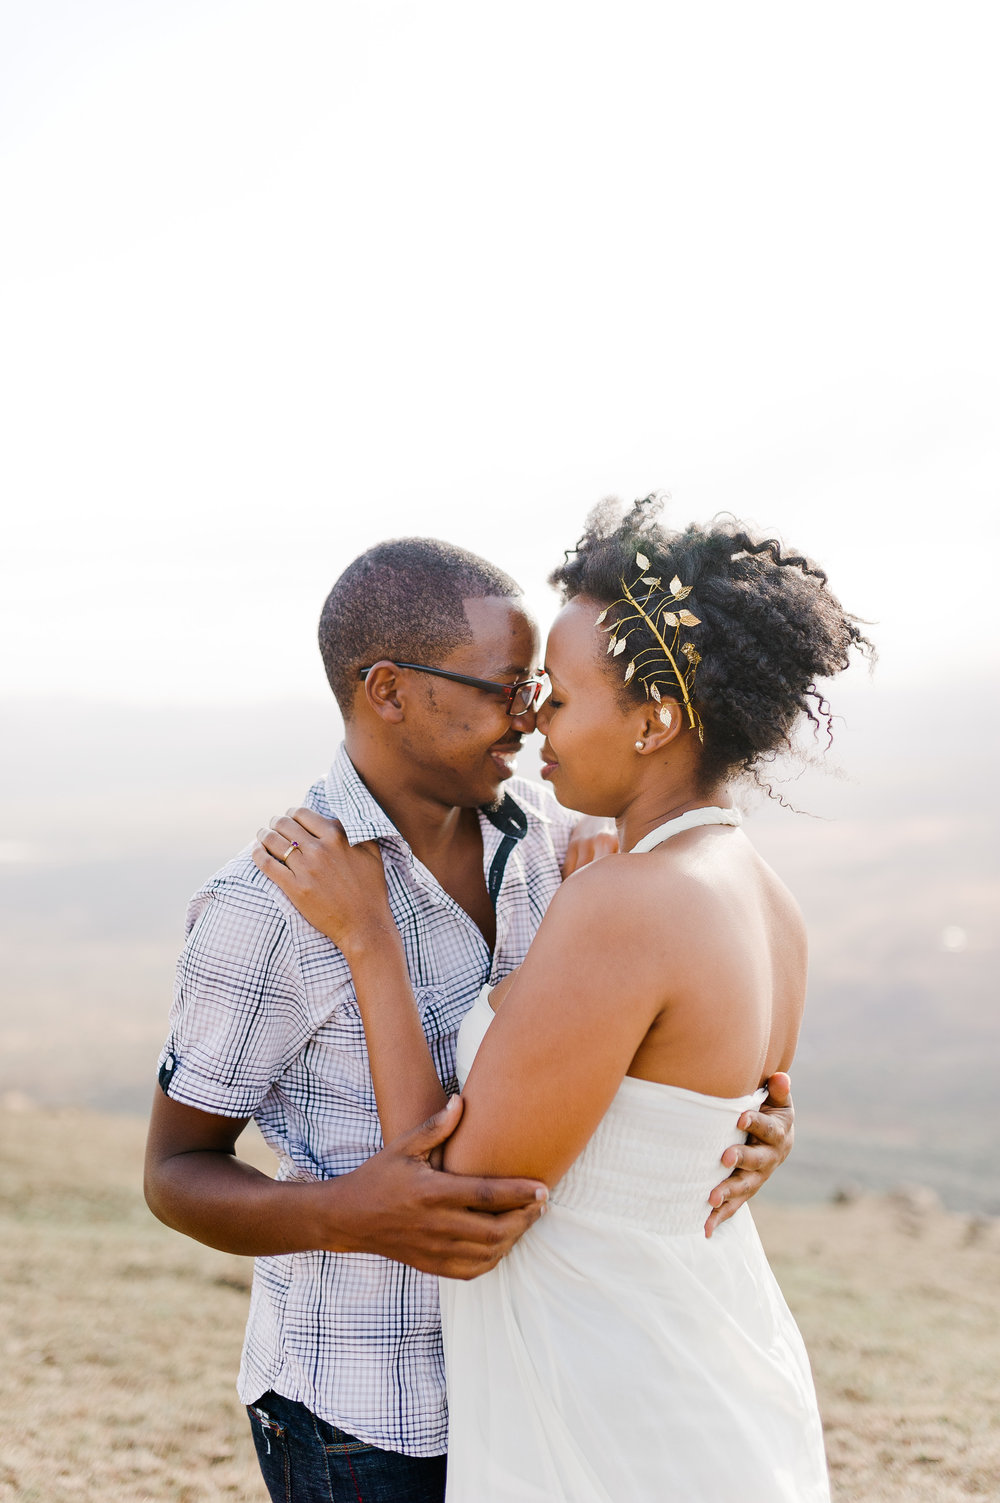 Anna-Hari-Photography-Kenyan-Wedding-Photographer-Ngong-Hills-Elopement-Kenya-22.jpg